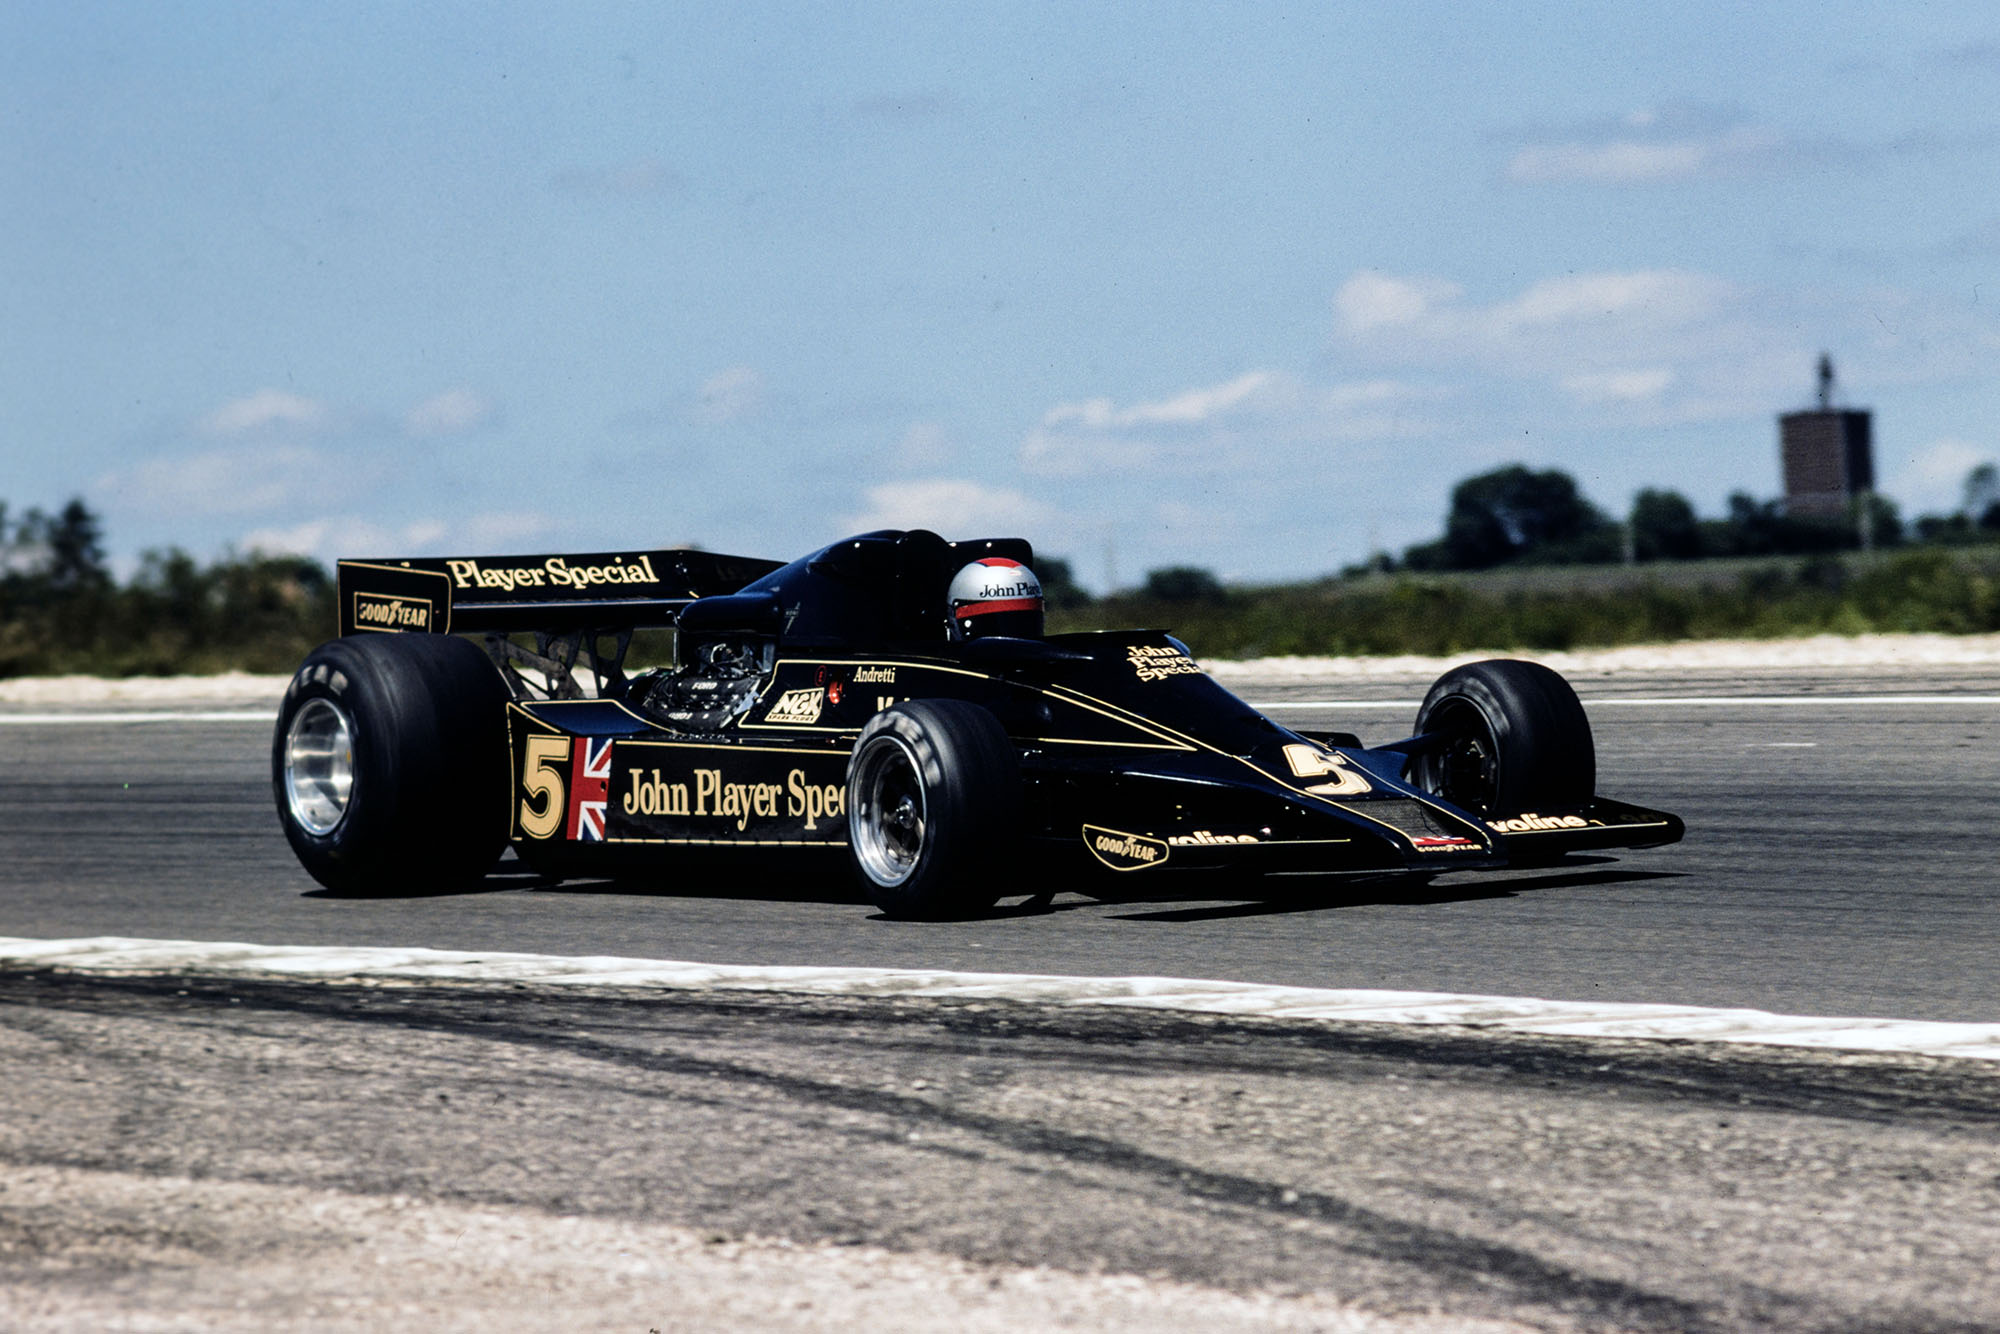 Mario Andretti (Lotus) at the 1977 french Grand Prix, Dijon.